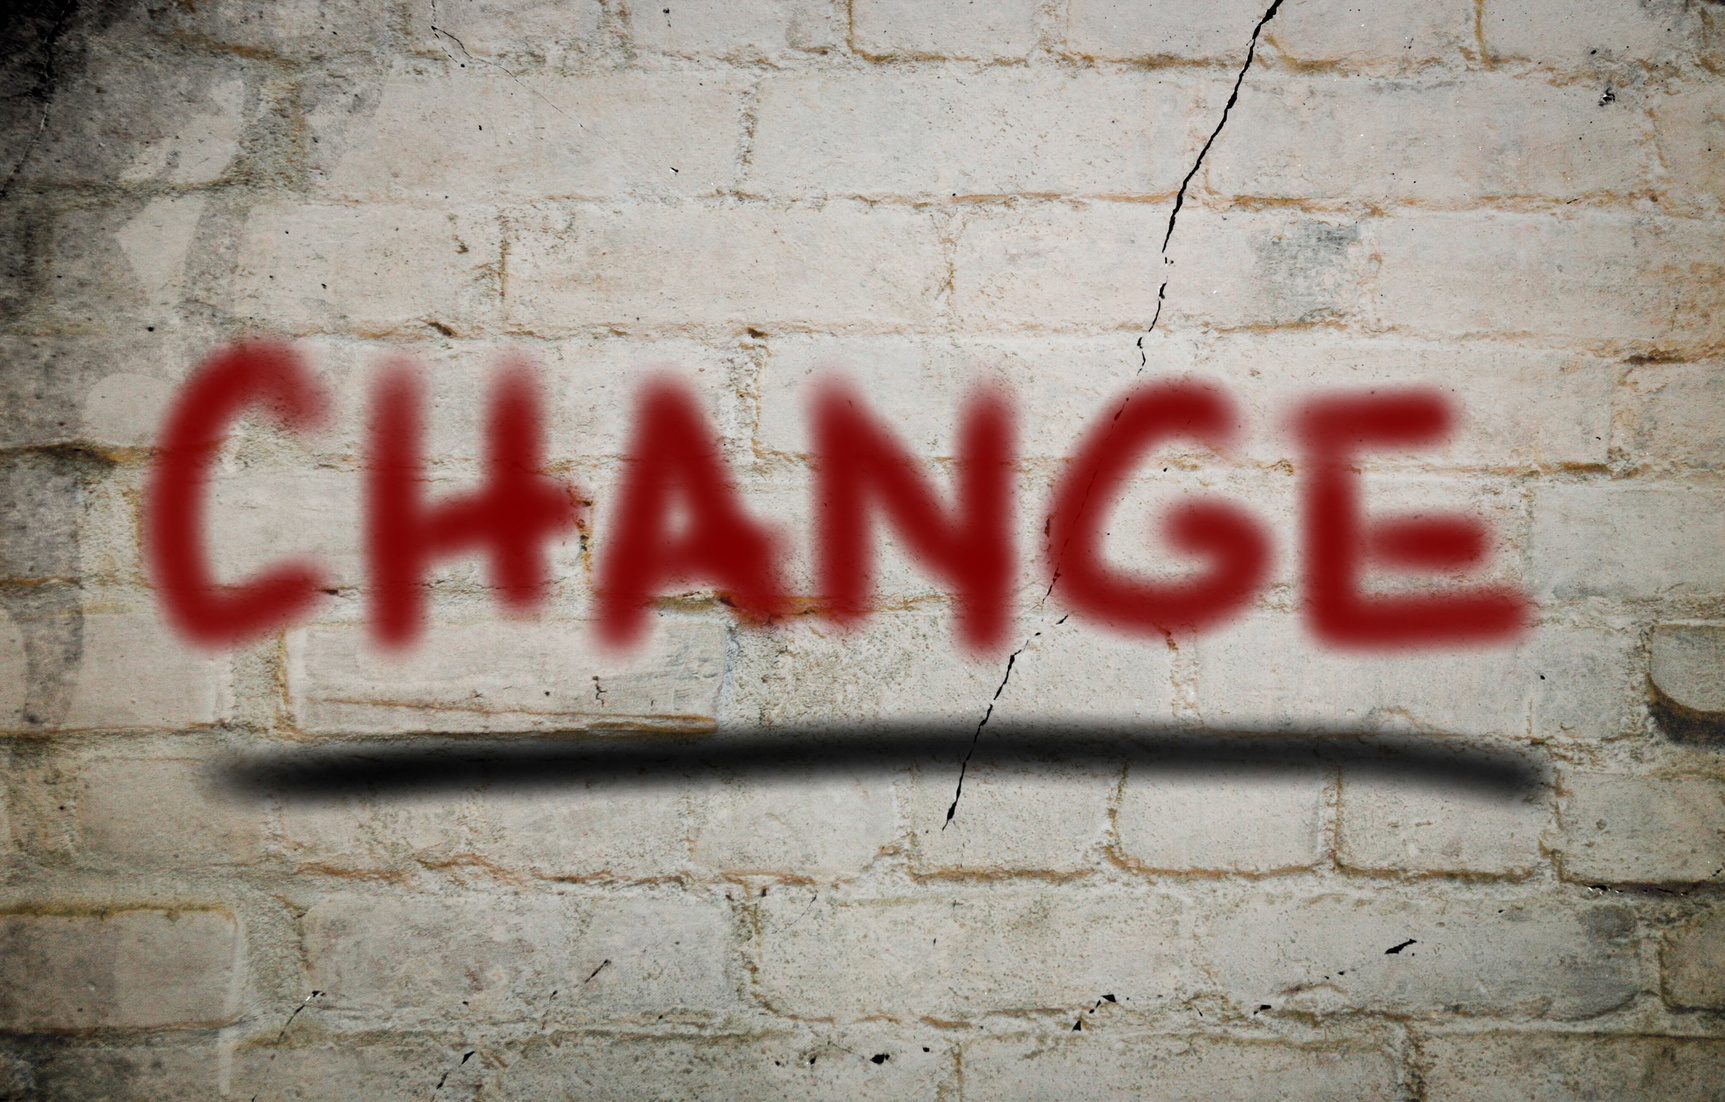 Changing A Safety Culture Starts With You